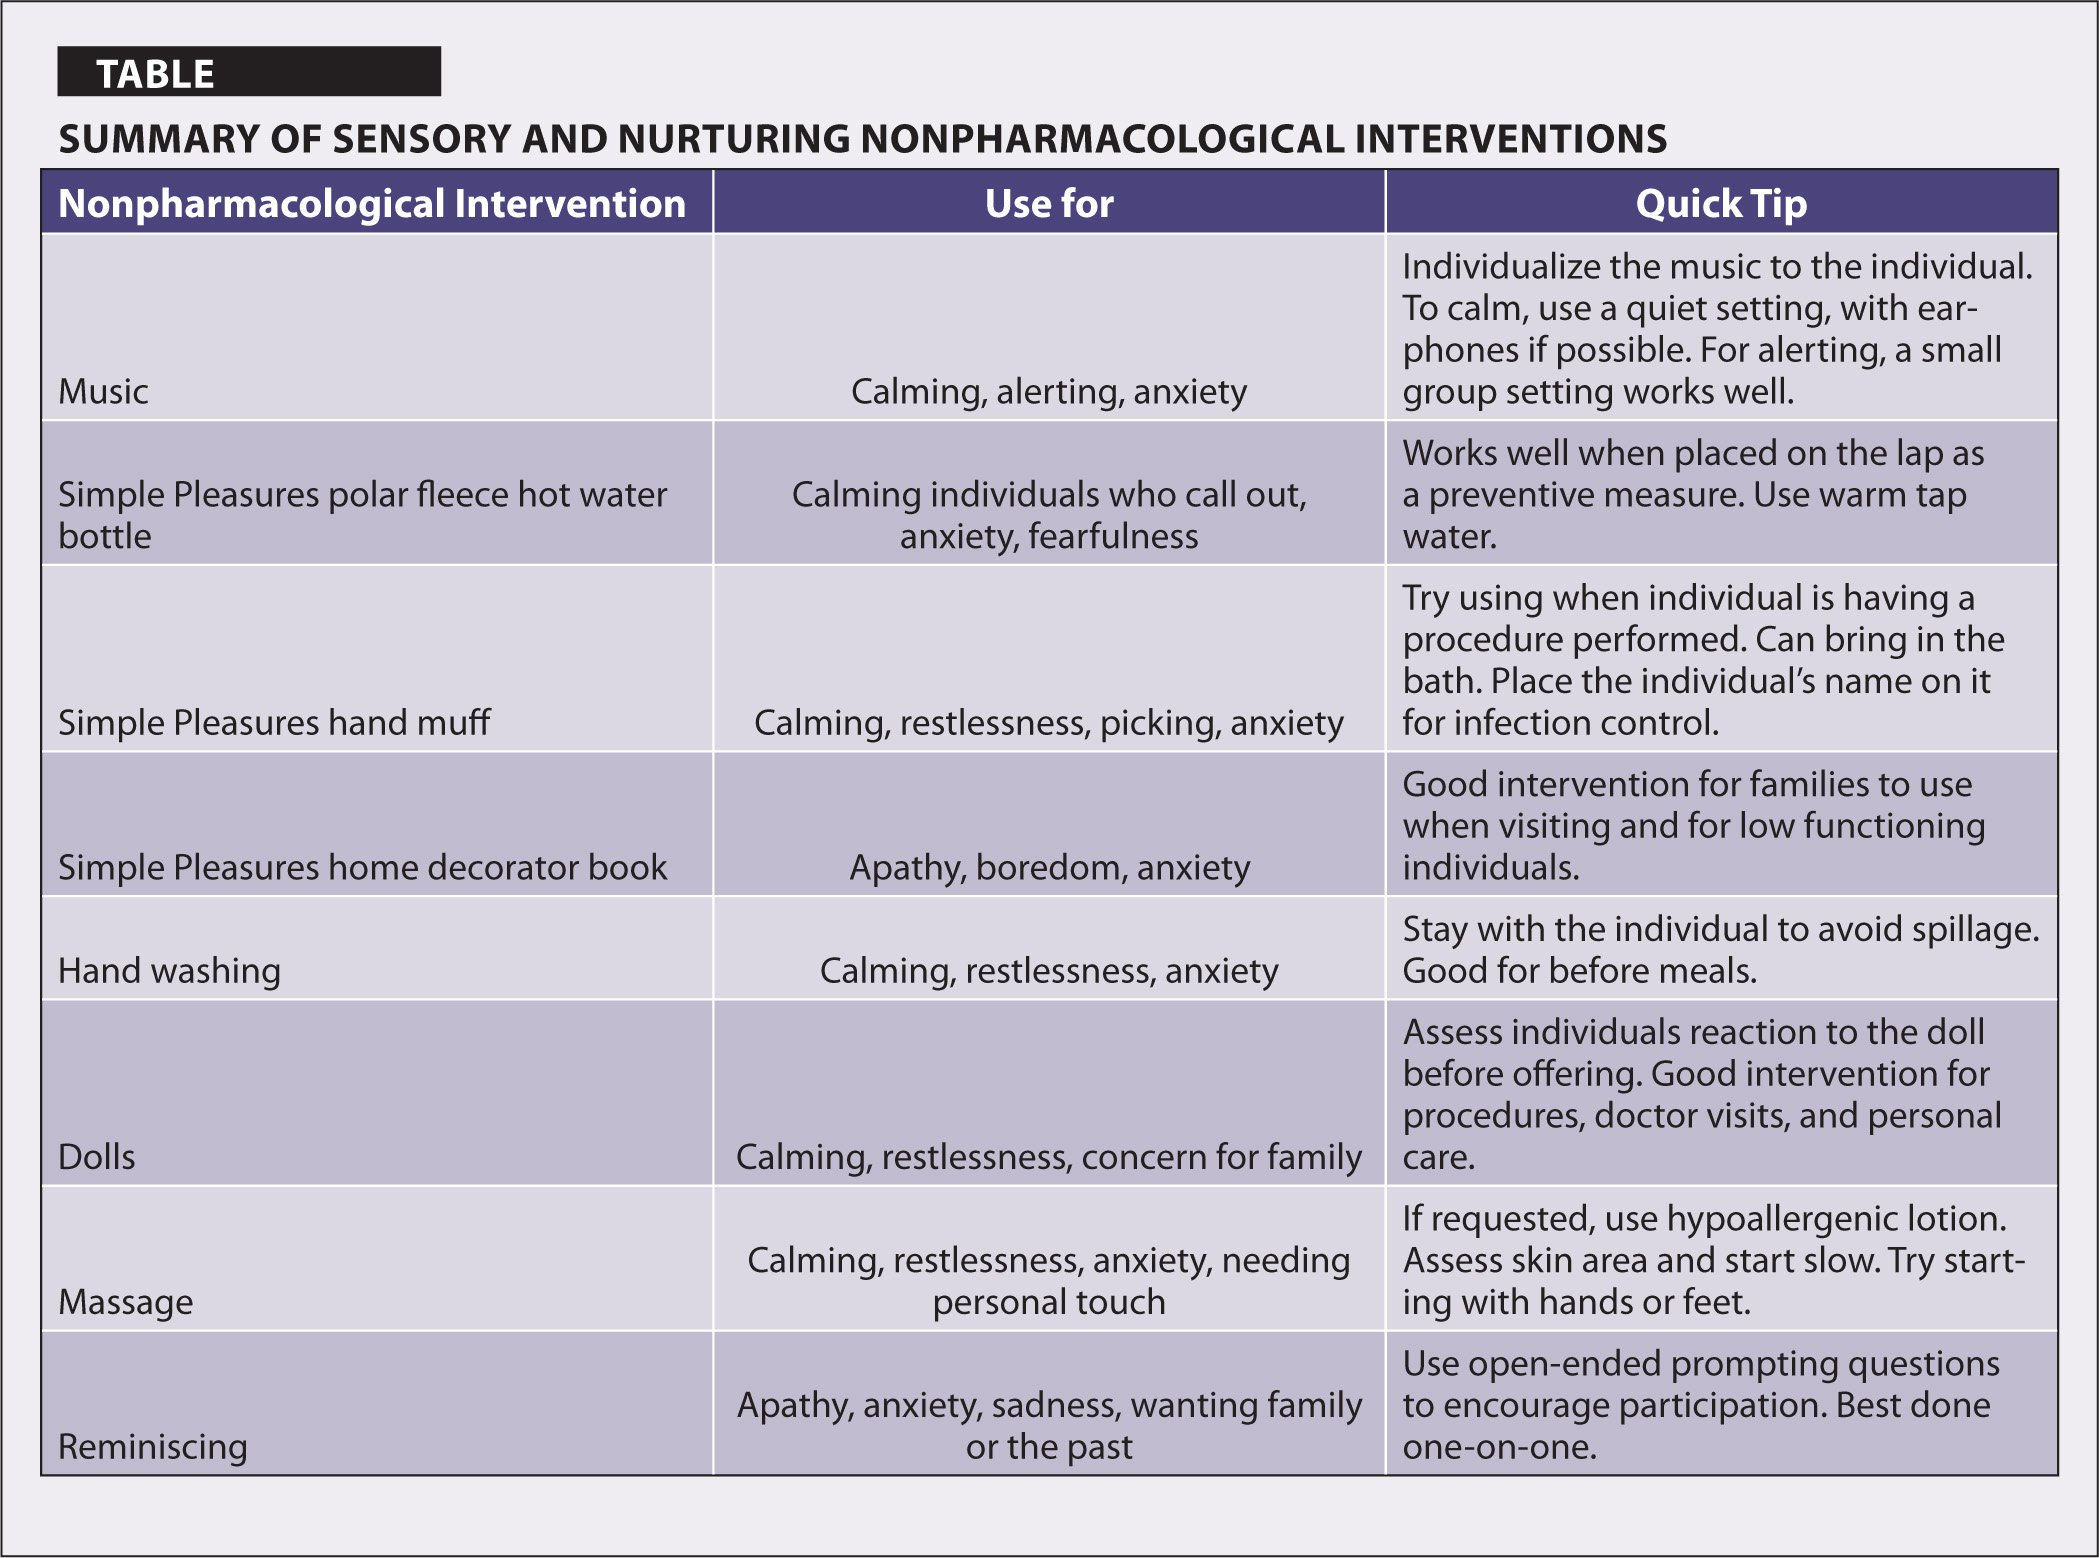 Summary of Sensory and Nurturing Nonpharmacological Interventions